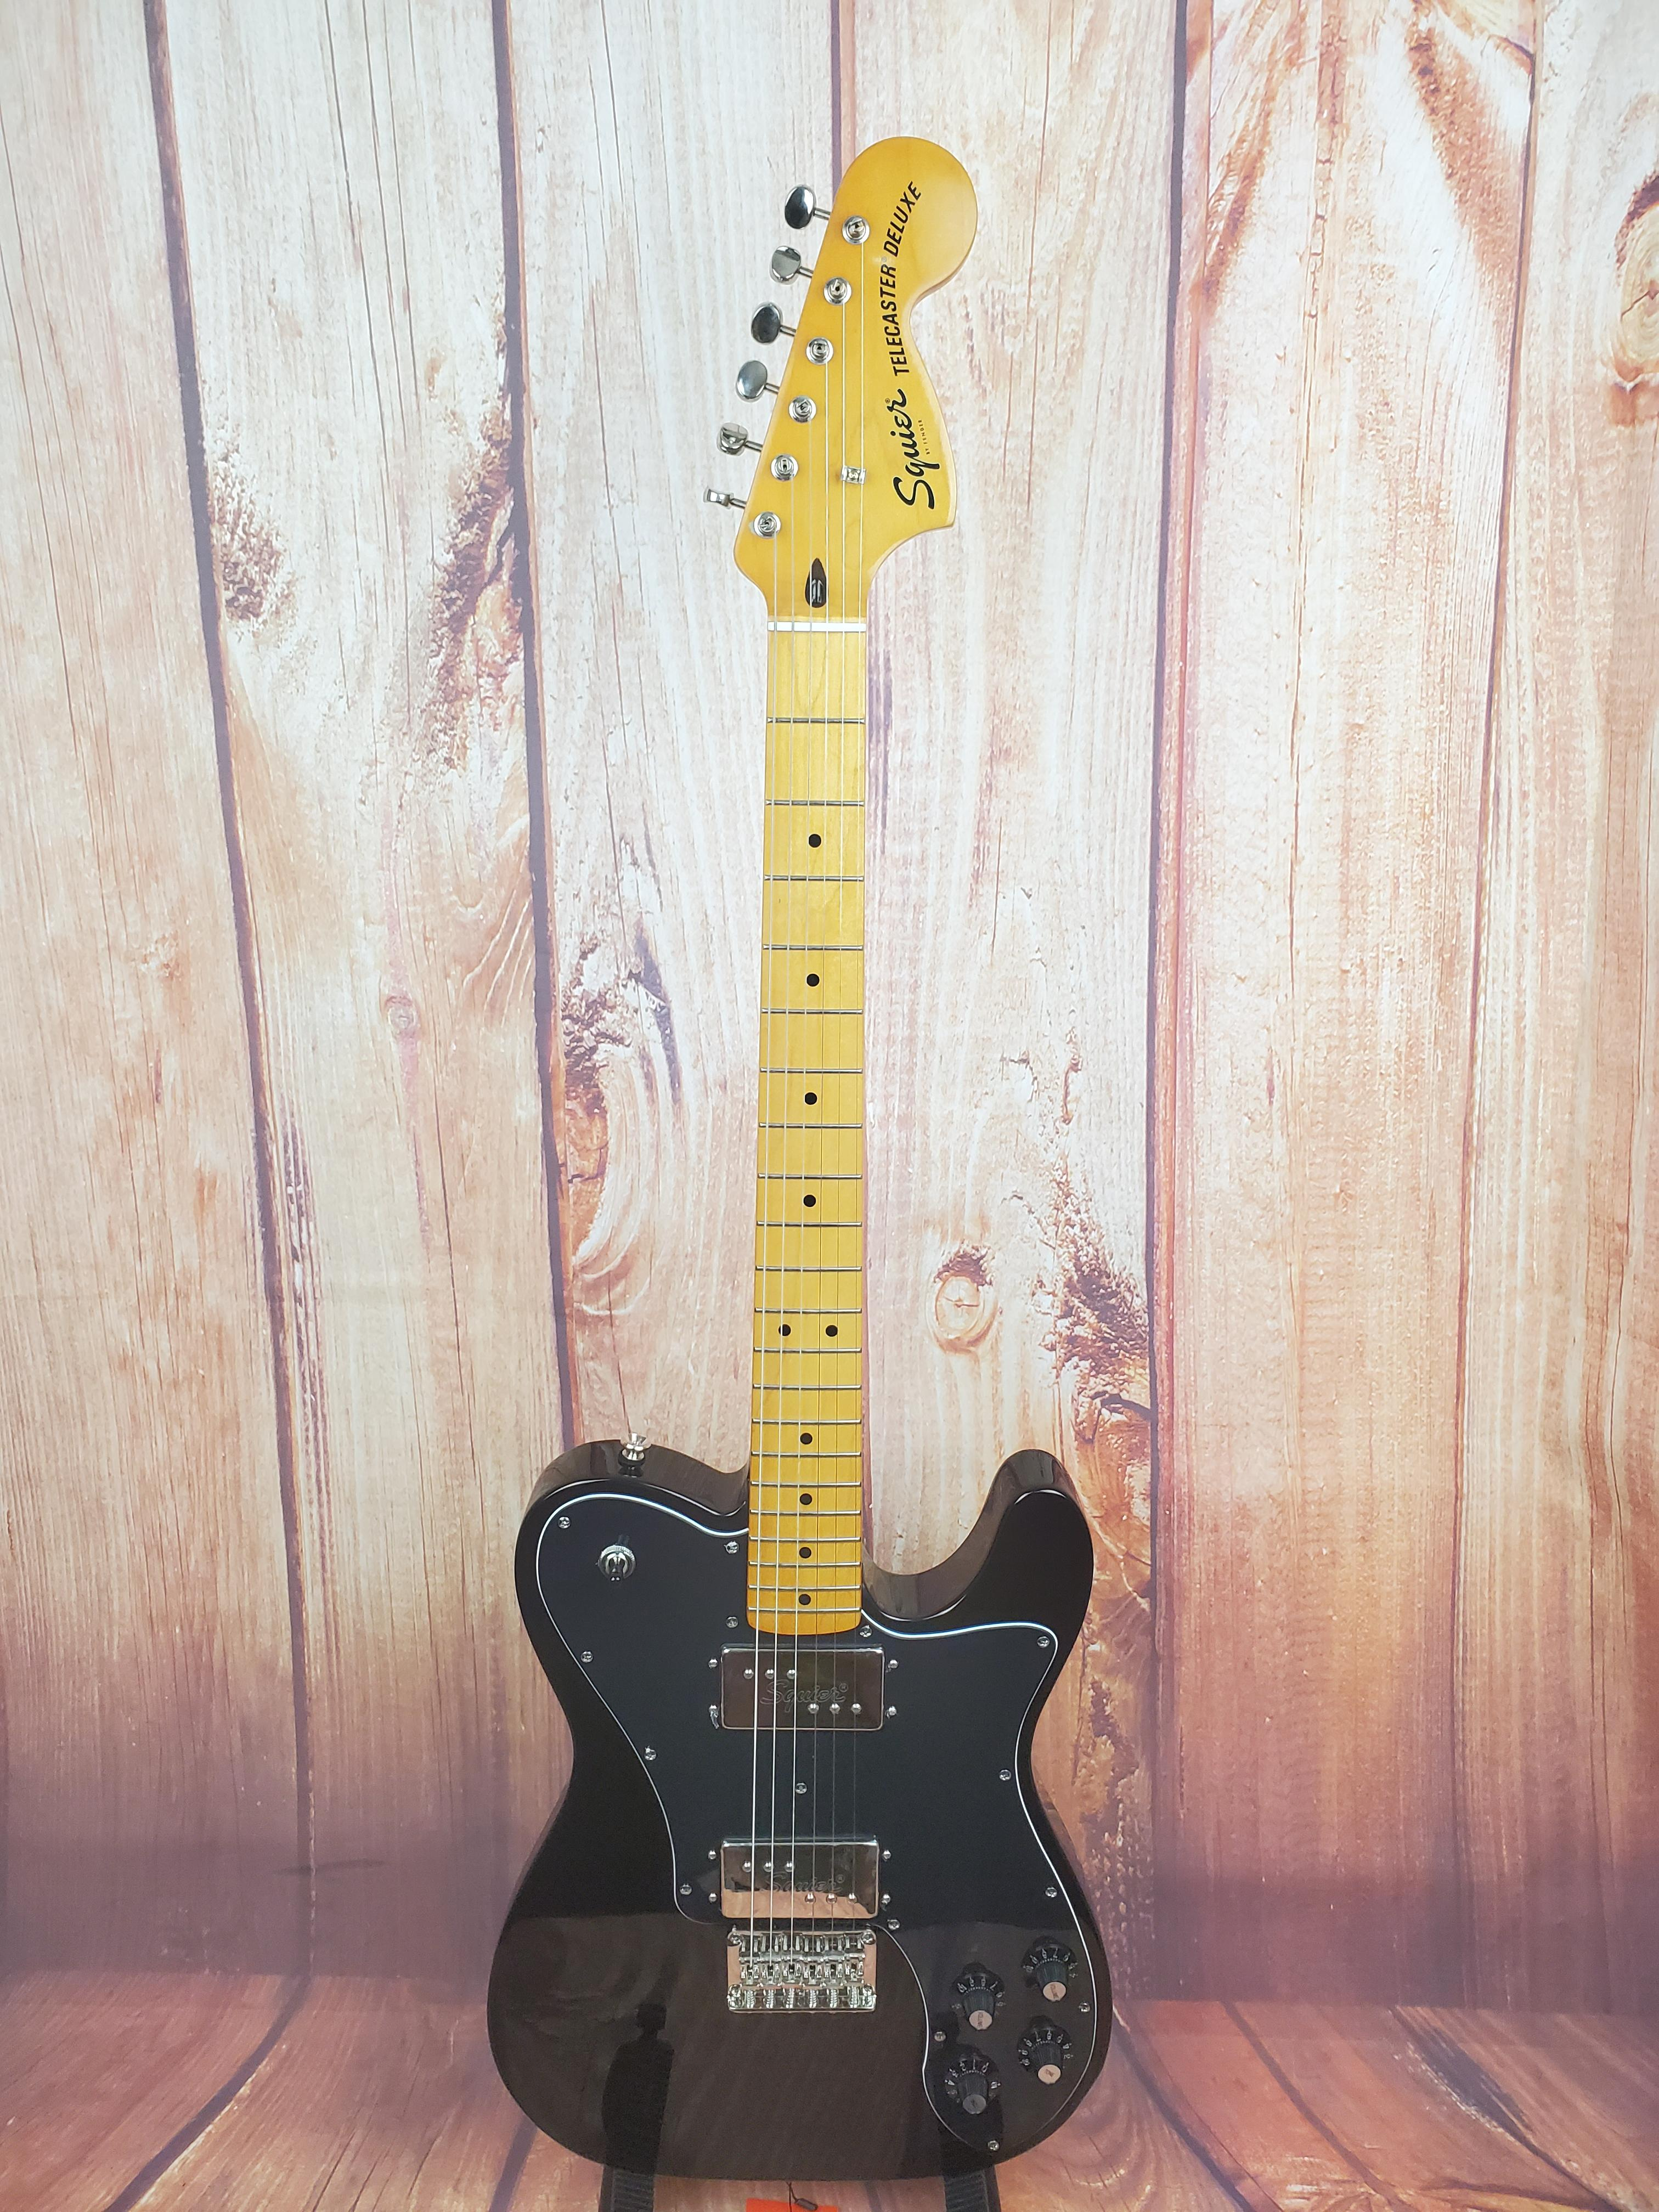 Used-Squier Classic Vibe 70s Telecaster Deluxe